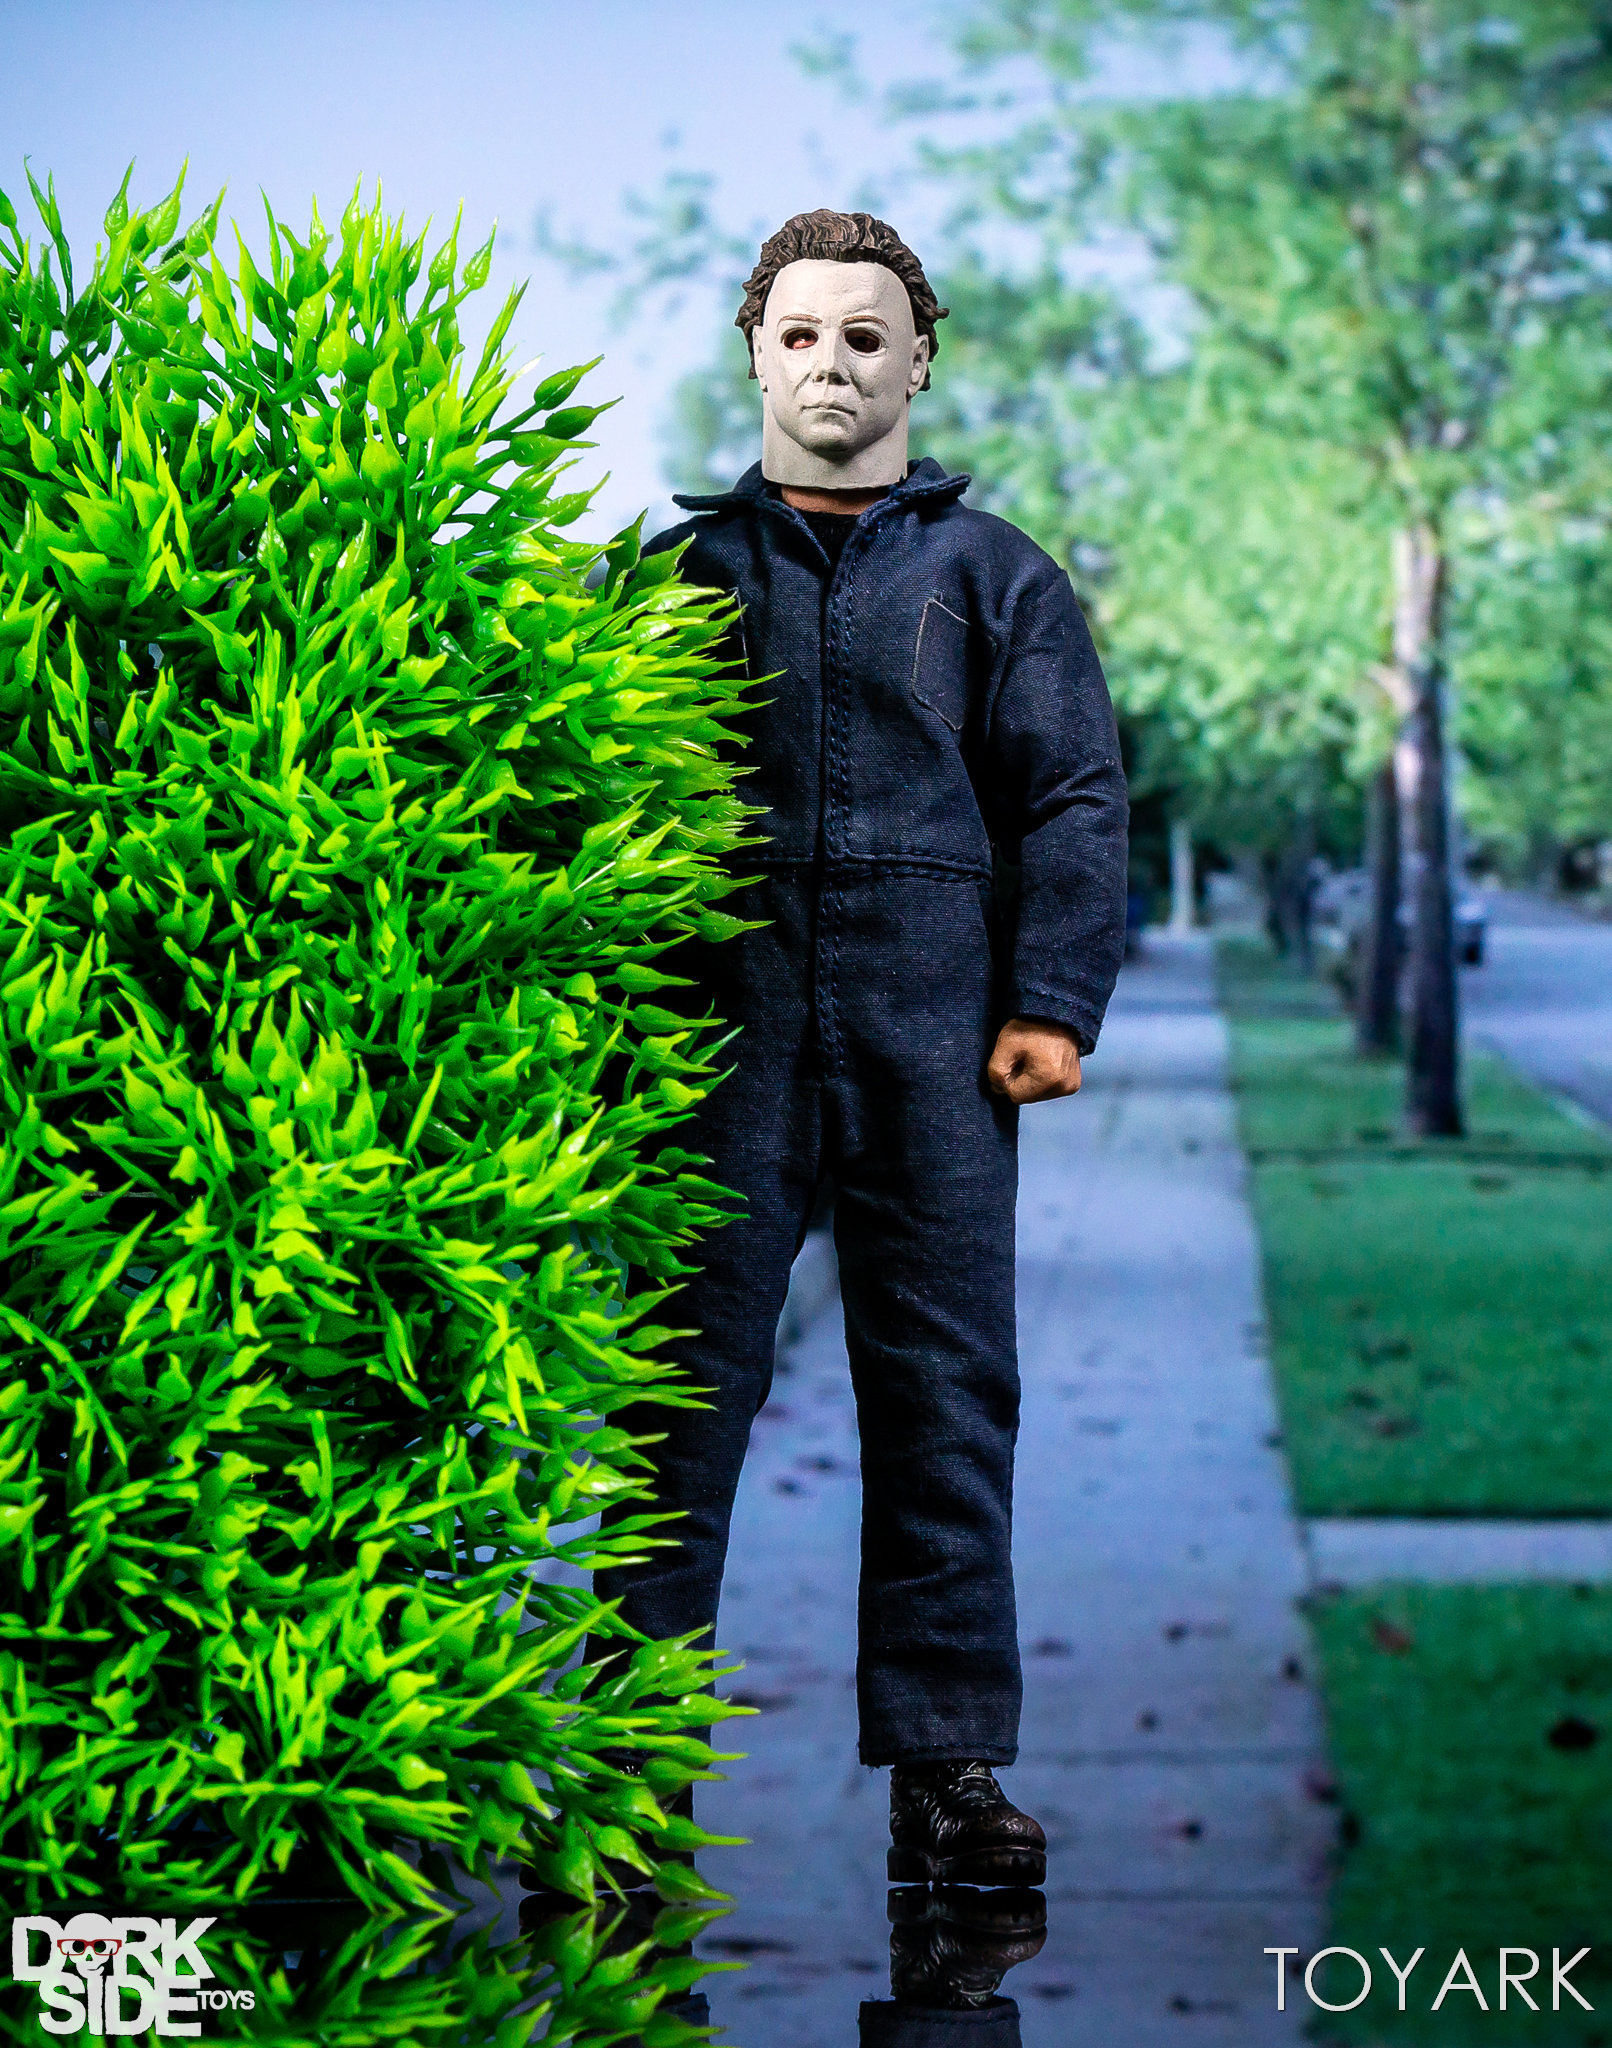 https://news.toyark.com/wp-content/uploads/sites/4/2018/10/Mezco-One12-Michael-Myers-051.jpg